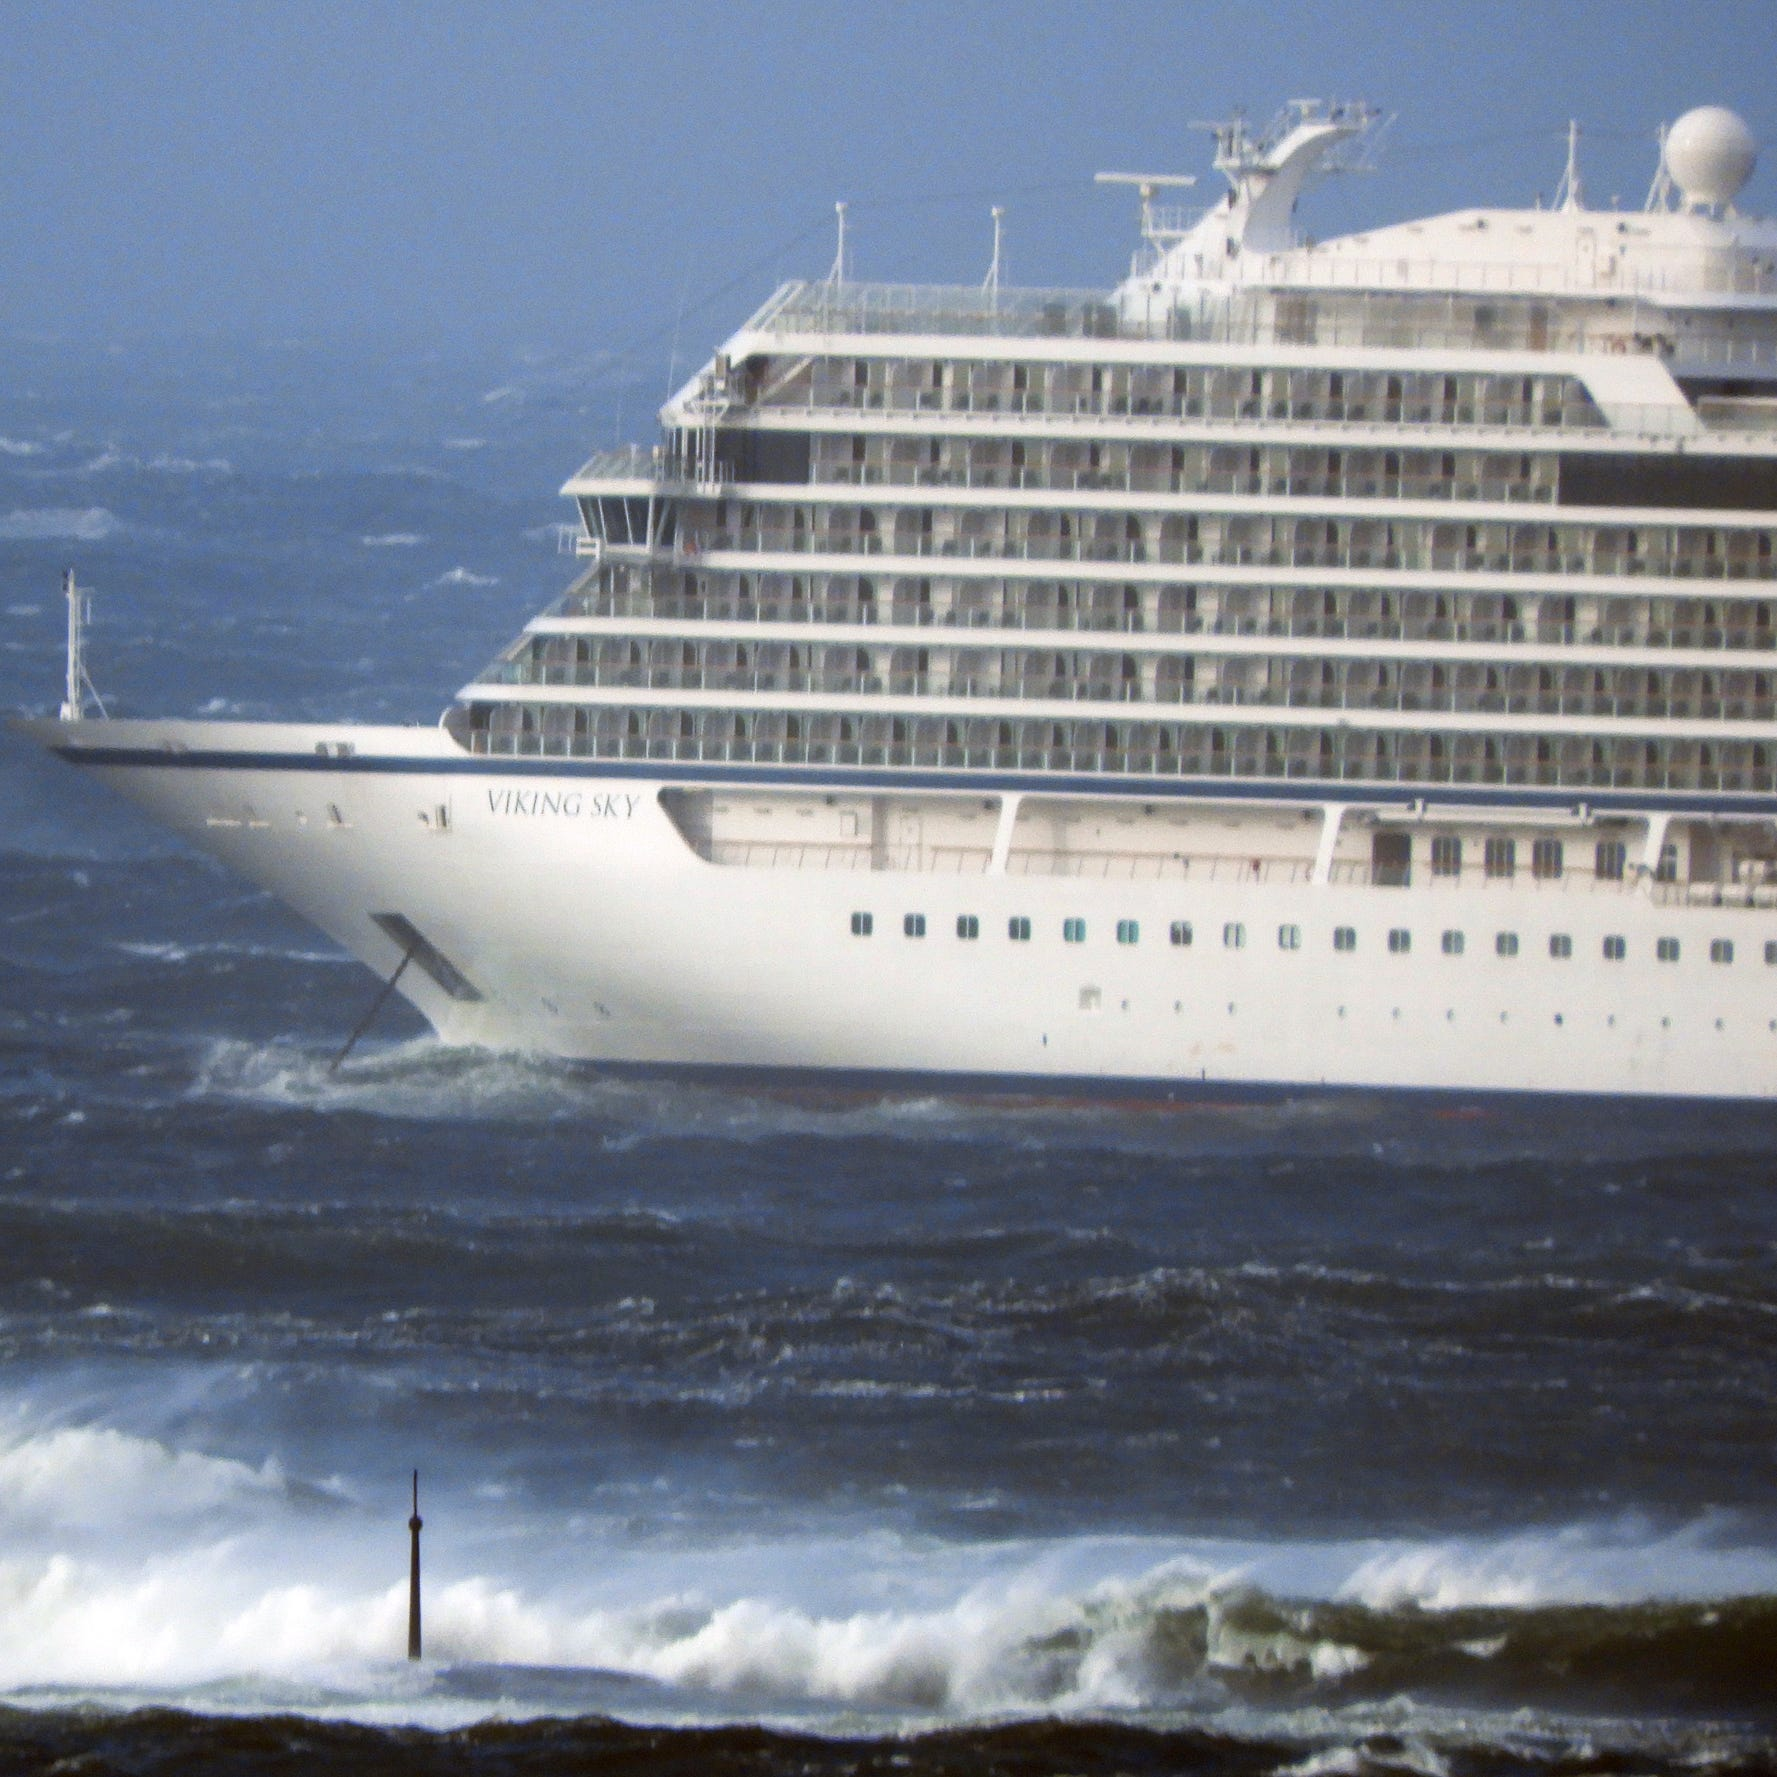 Fears cruise ship would run aground off Norway lead to evacuation